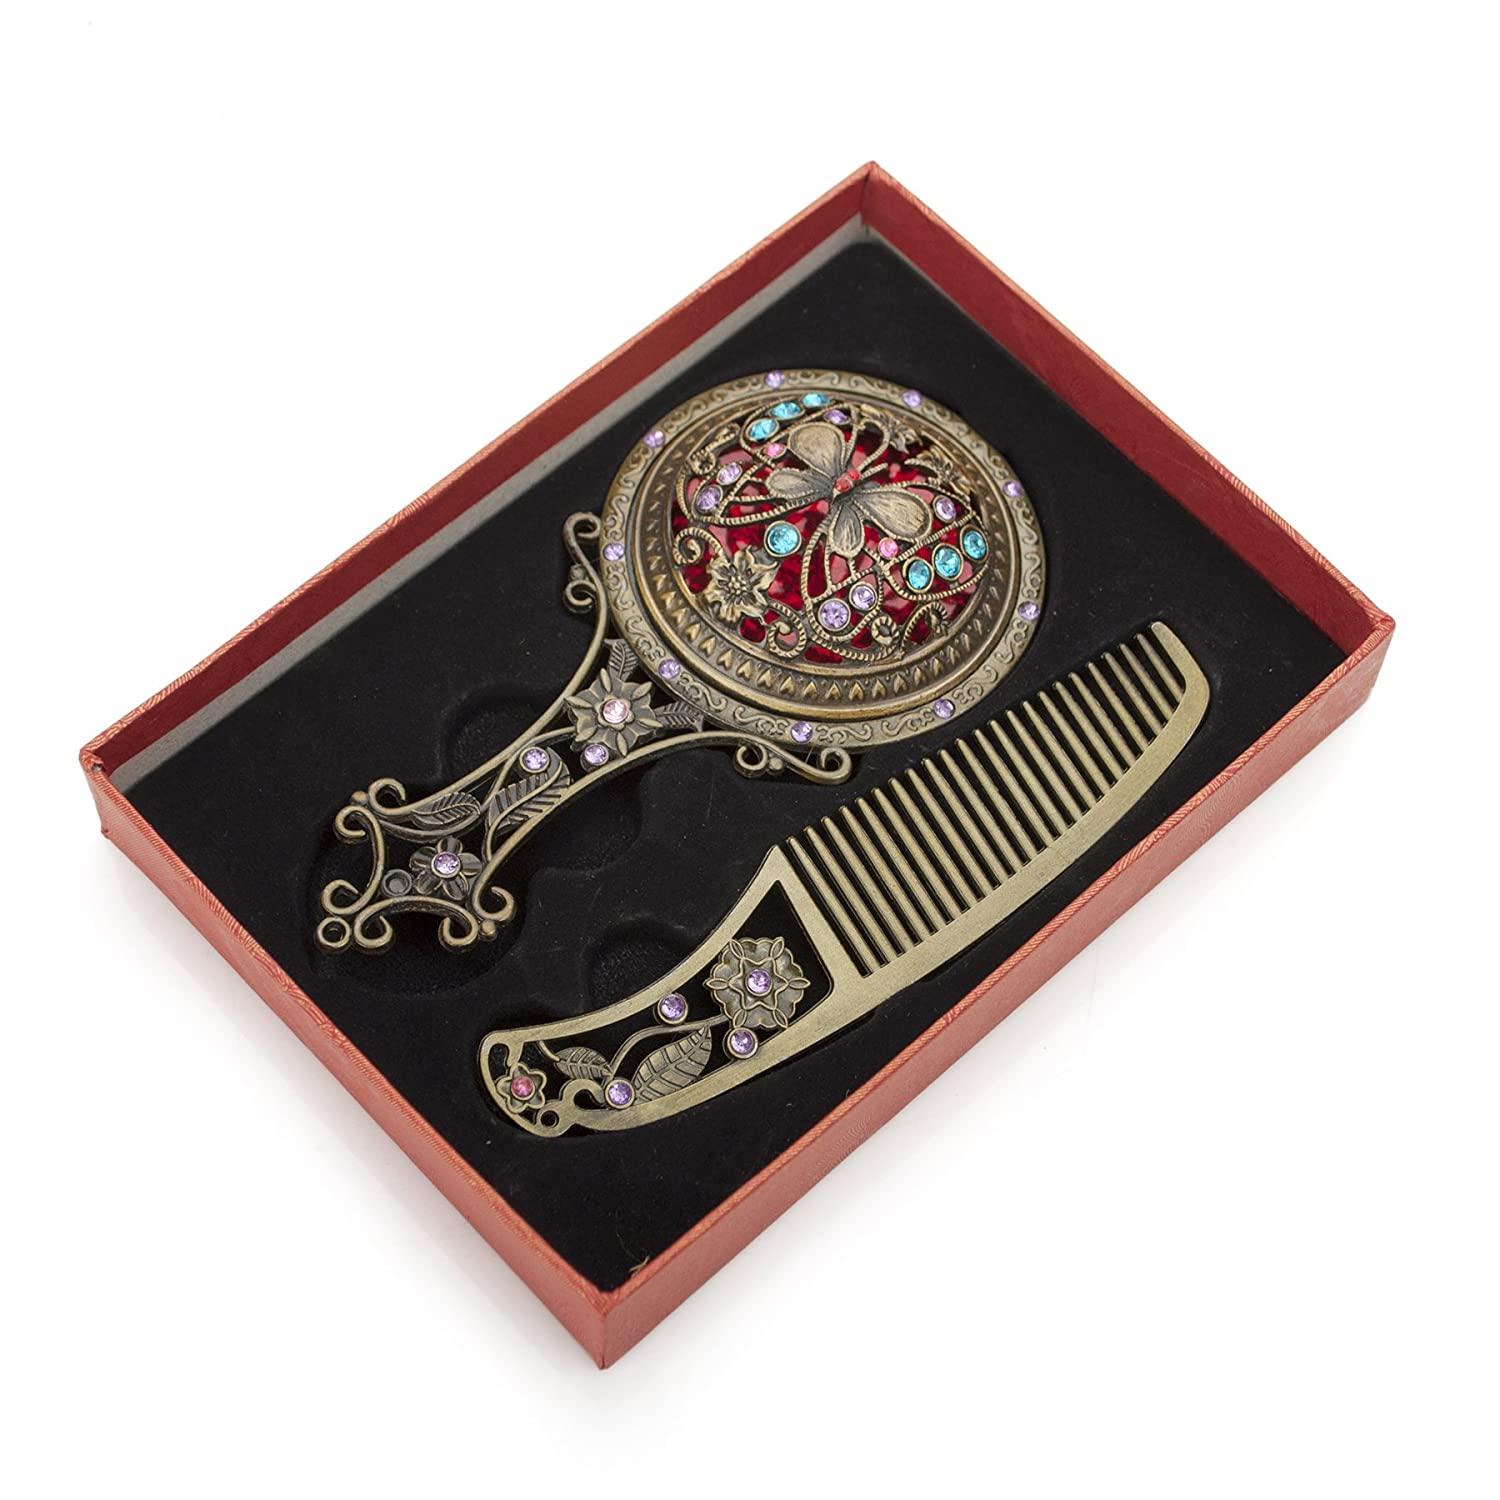 ALICE Antique Hand Mirror and Comb Set, With Gift Box, Silver or Bronze-Bronze